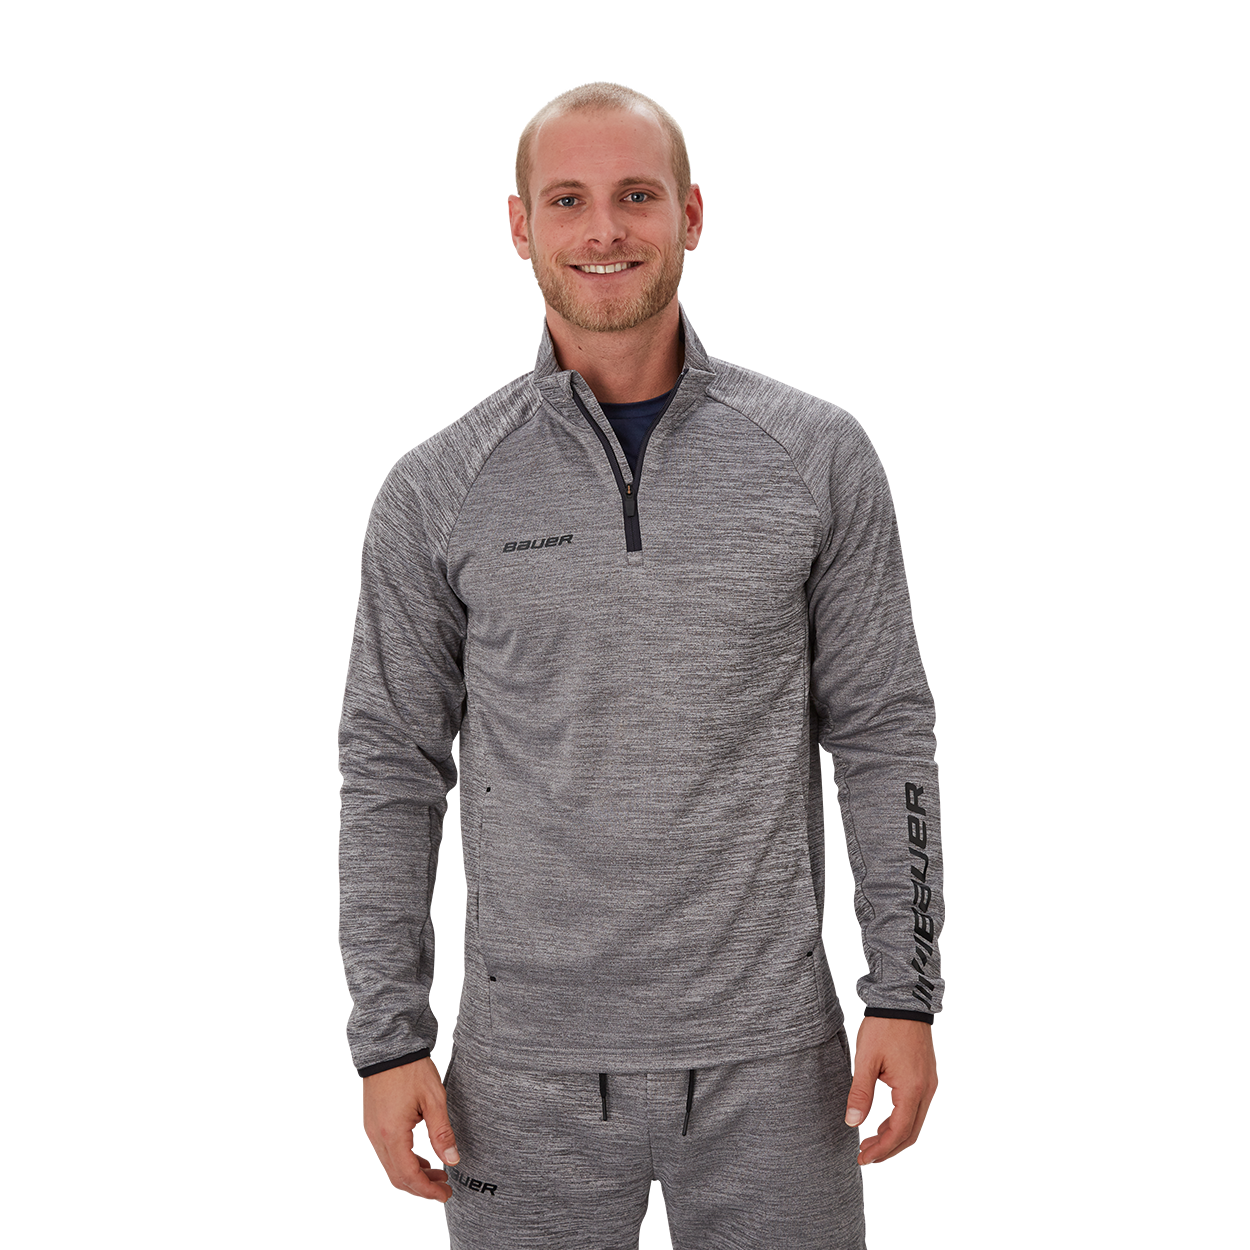 Bauer Vapor Fleece Quarter Zip,Серый,Размер M